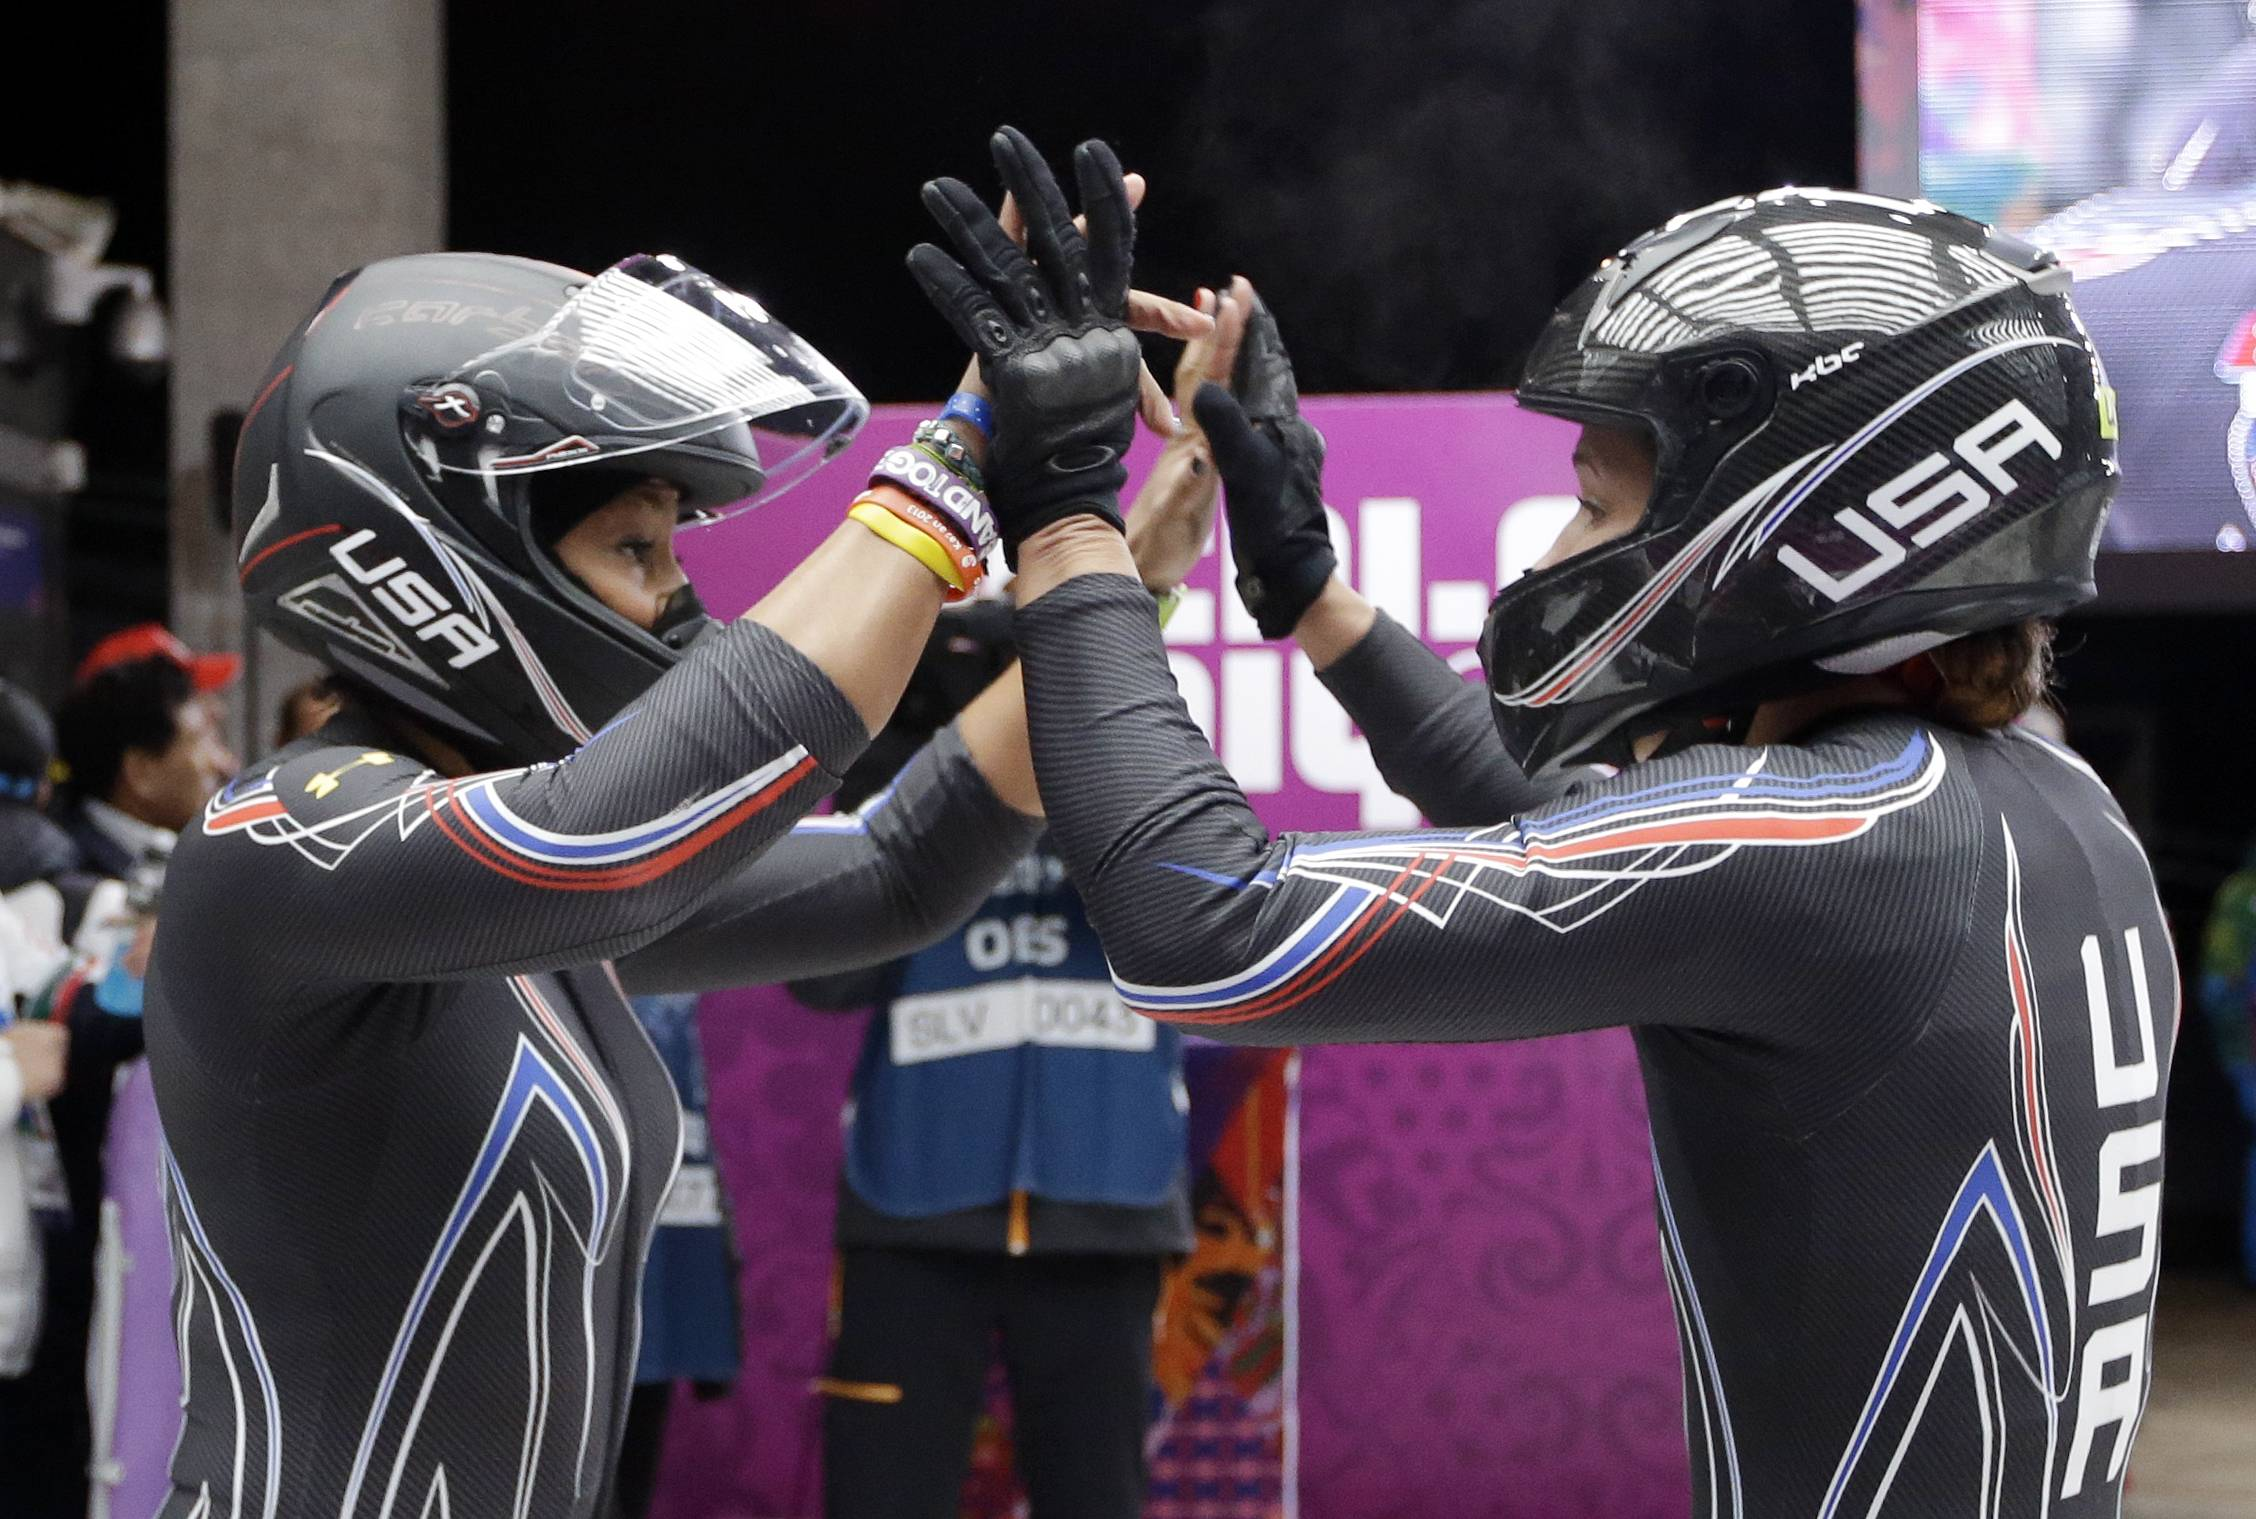 The team from the United States USA-3, piloted by Jazmine Fenlator with brakeman Lolo Jones, high-five after their first run during the women's two-man bobsled competition at the 2014 Winter Olympics, Tuesday, Feb. 18, 2014, in Krasnaya Polyana, Russia.